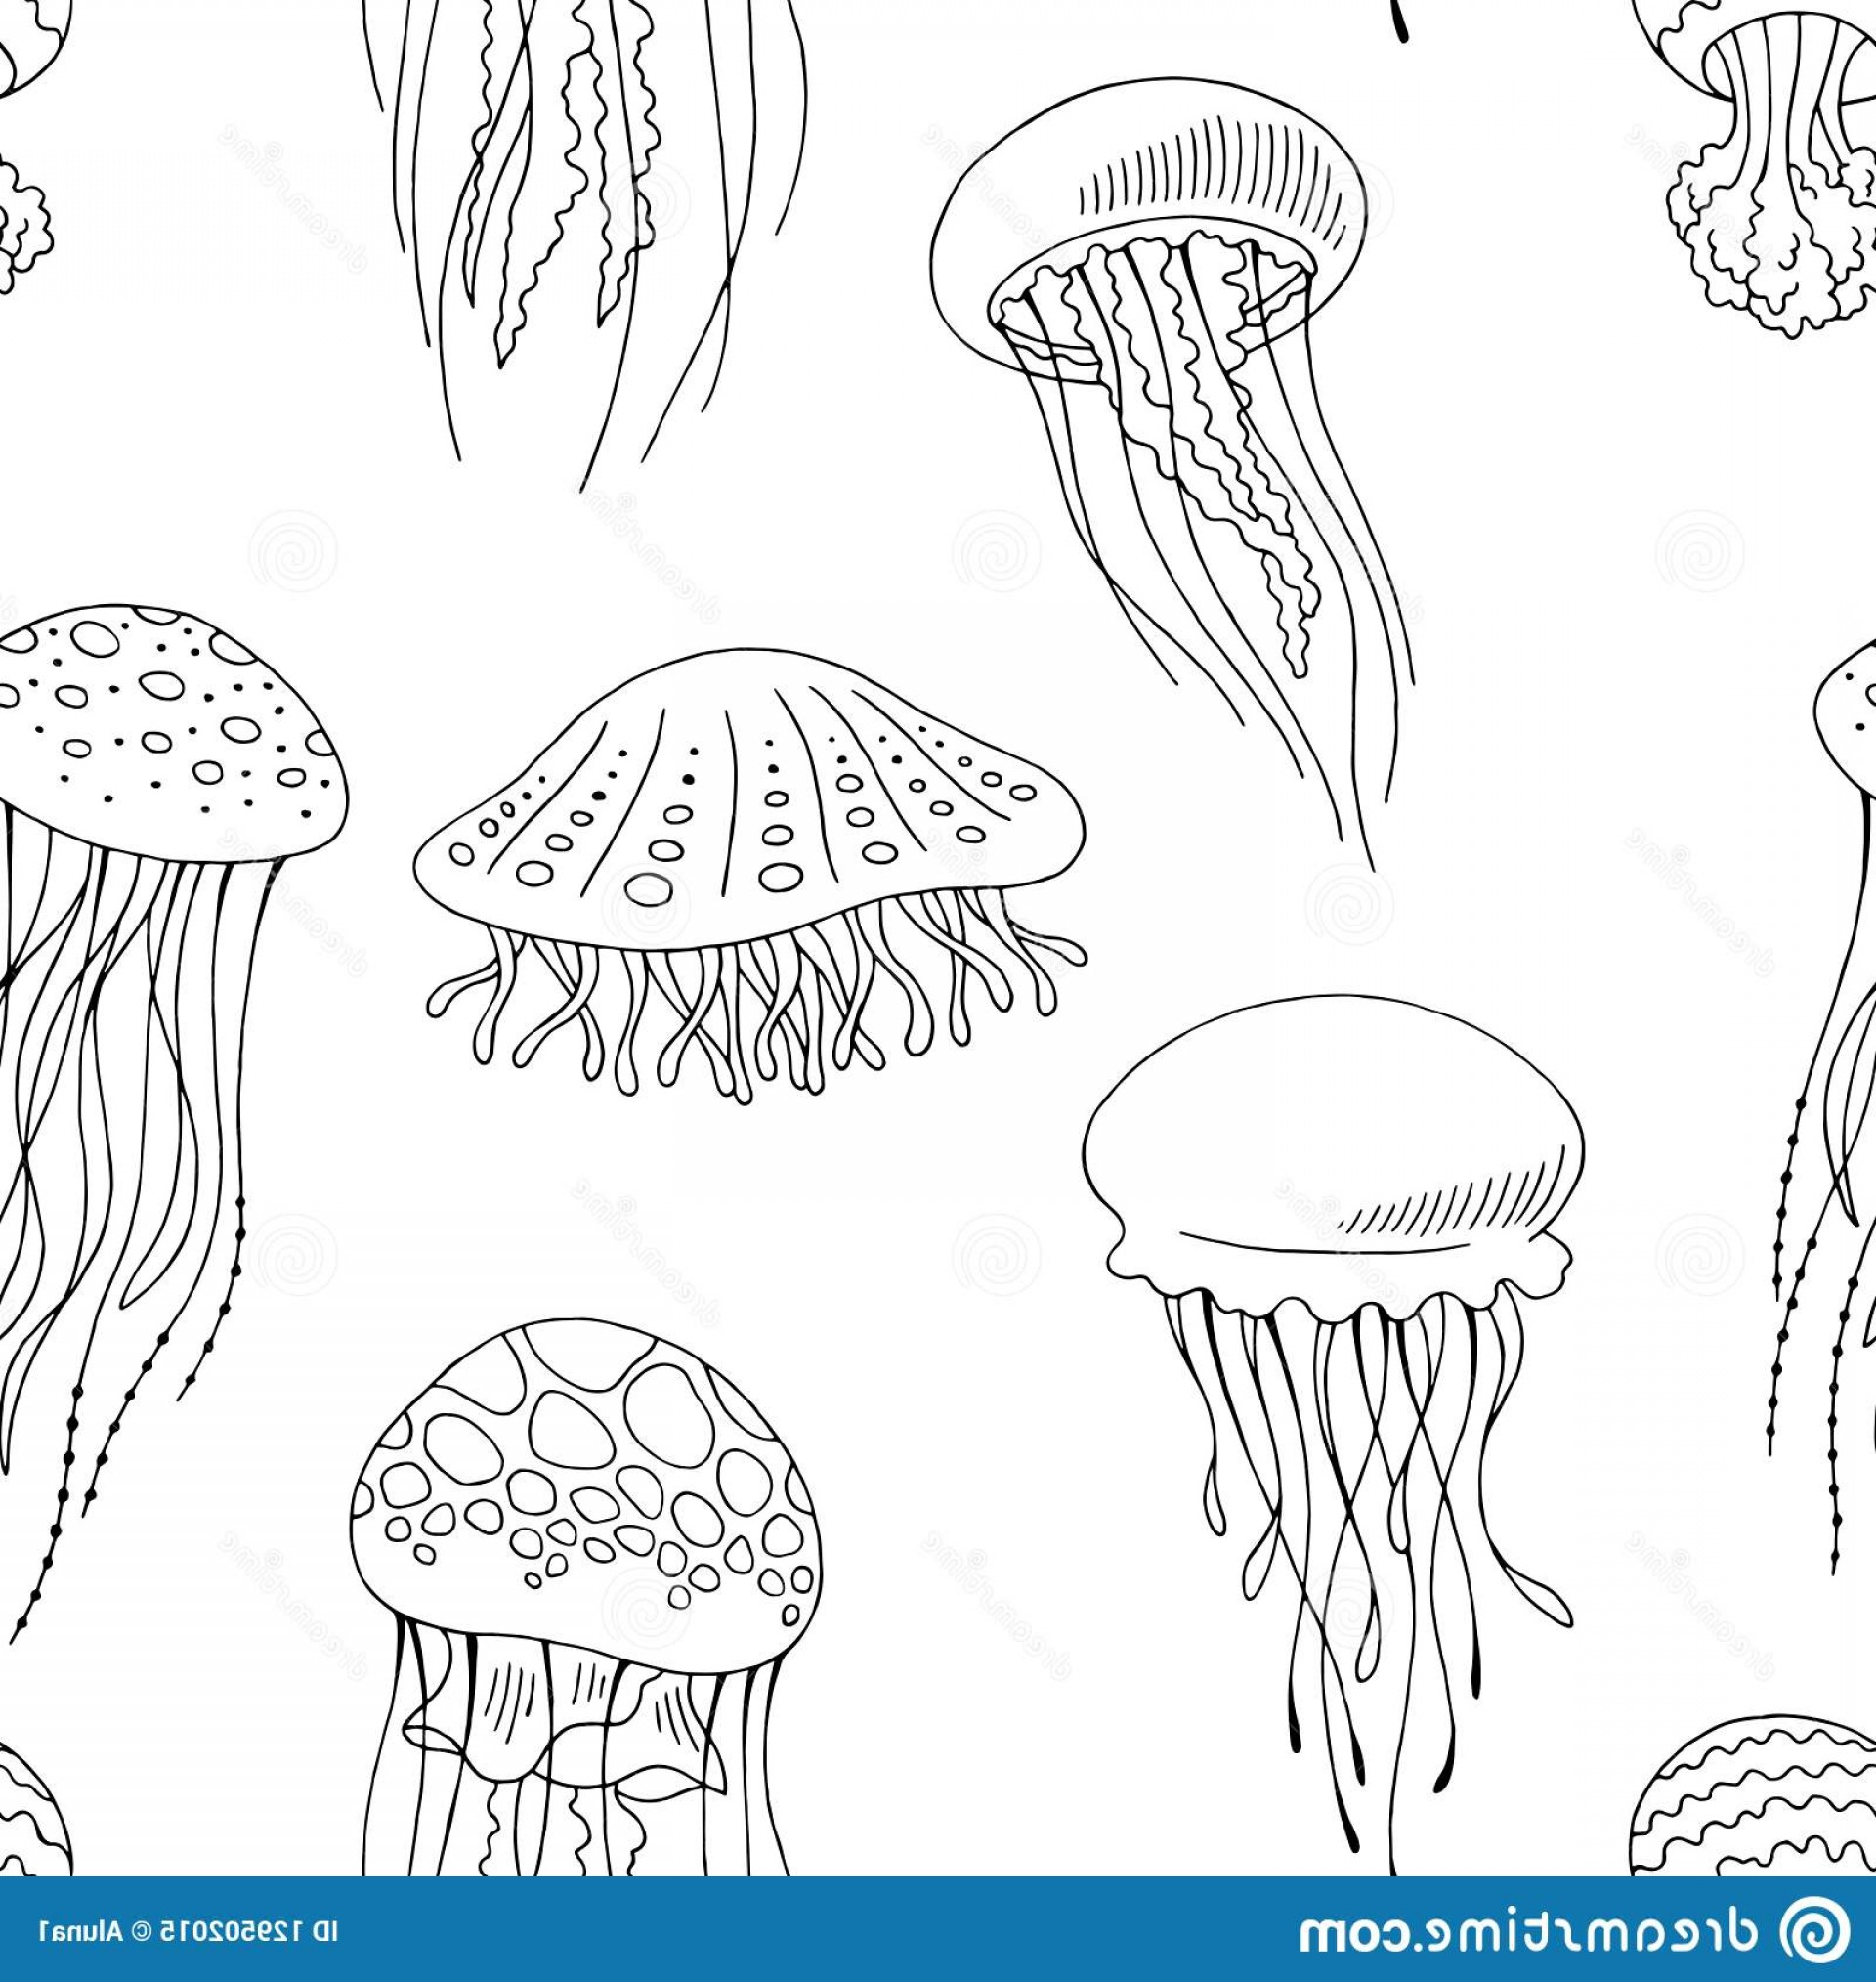 Jelly Fish Graphic Vector: Arugula Herb Graphic Art Black White Isolated Illustration Image